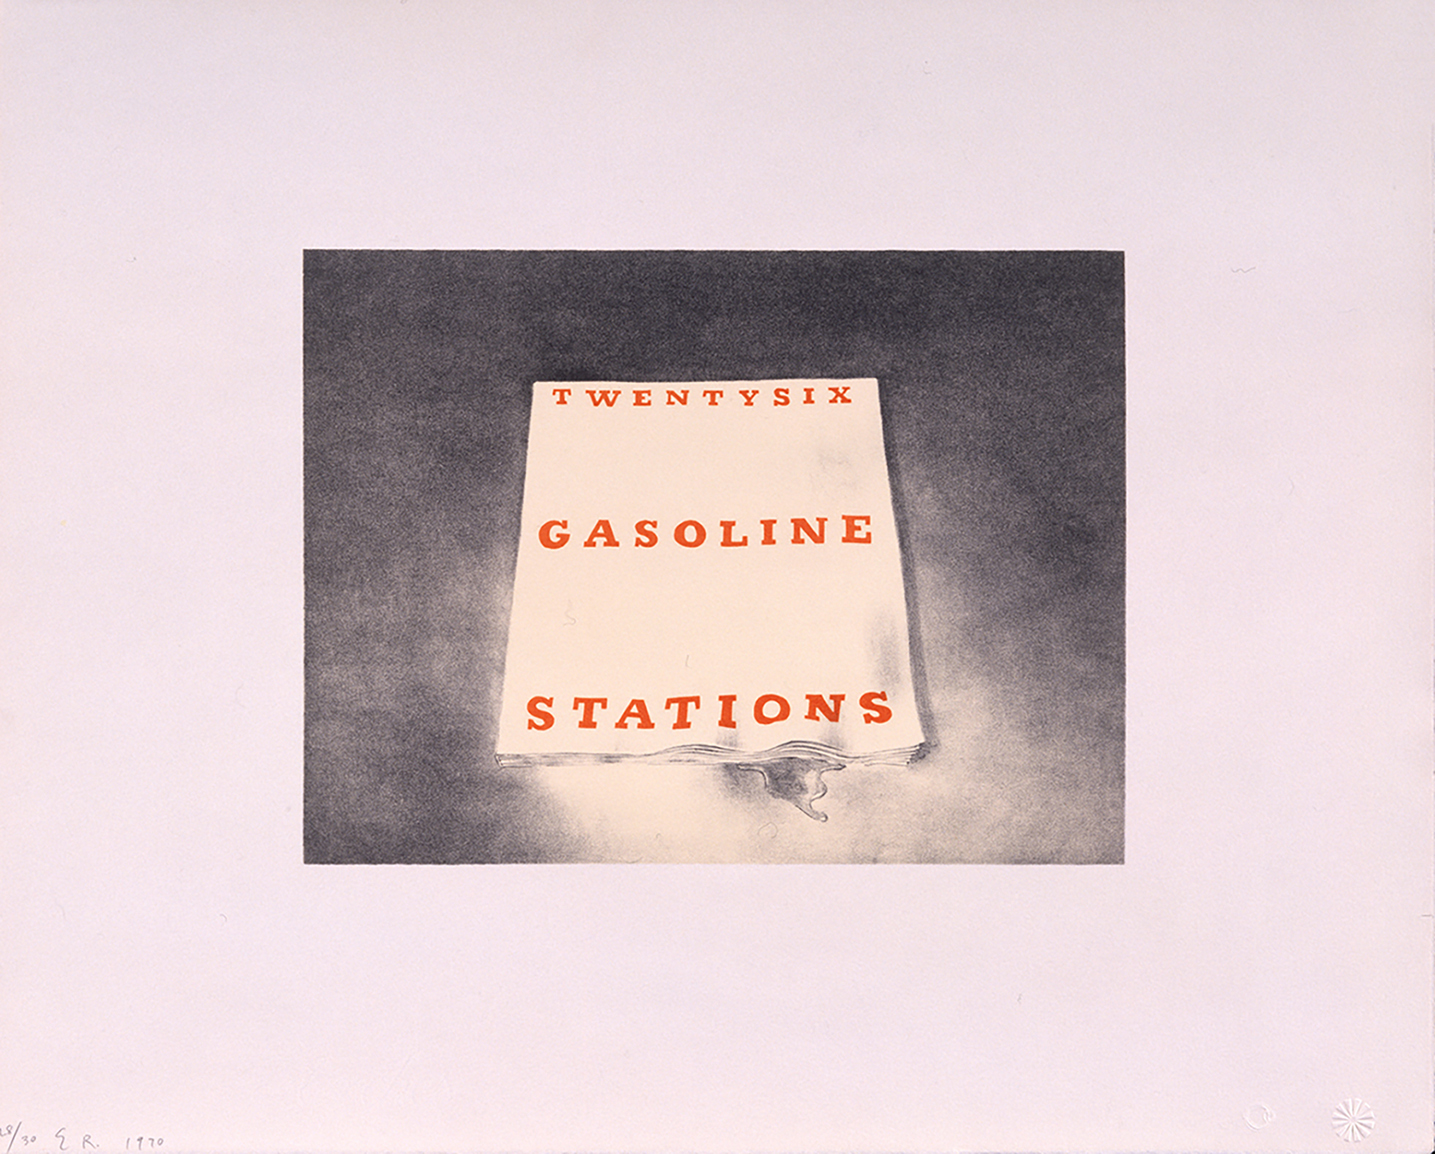 An painting of a photograph, featuring a stark white book with bold orange text: Twentysix Gasoline Stations